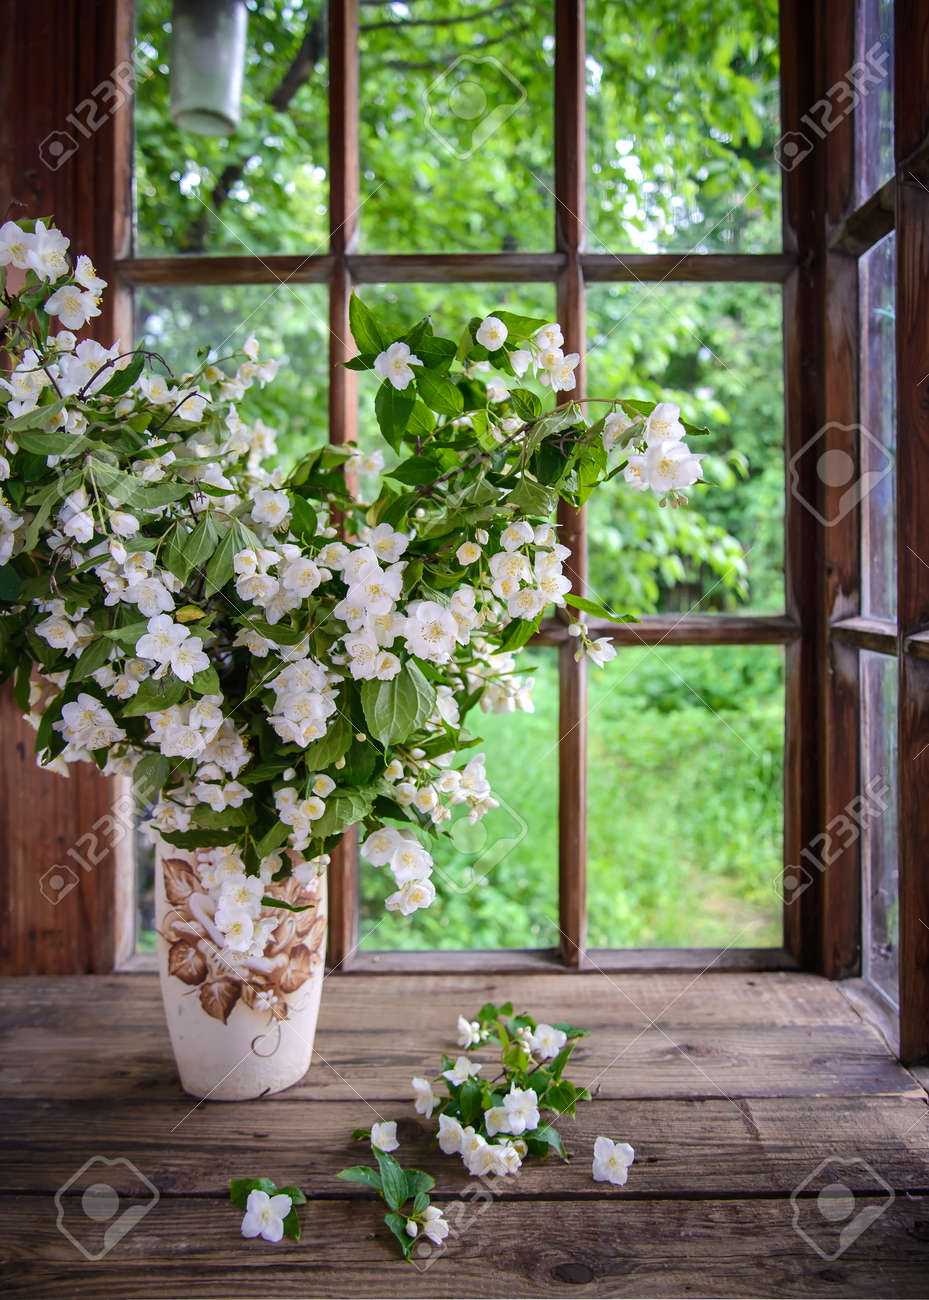 A large beautiful bouquet of Jasmine branches in a vase by a wooden window in the countryside - 150274517